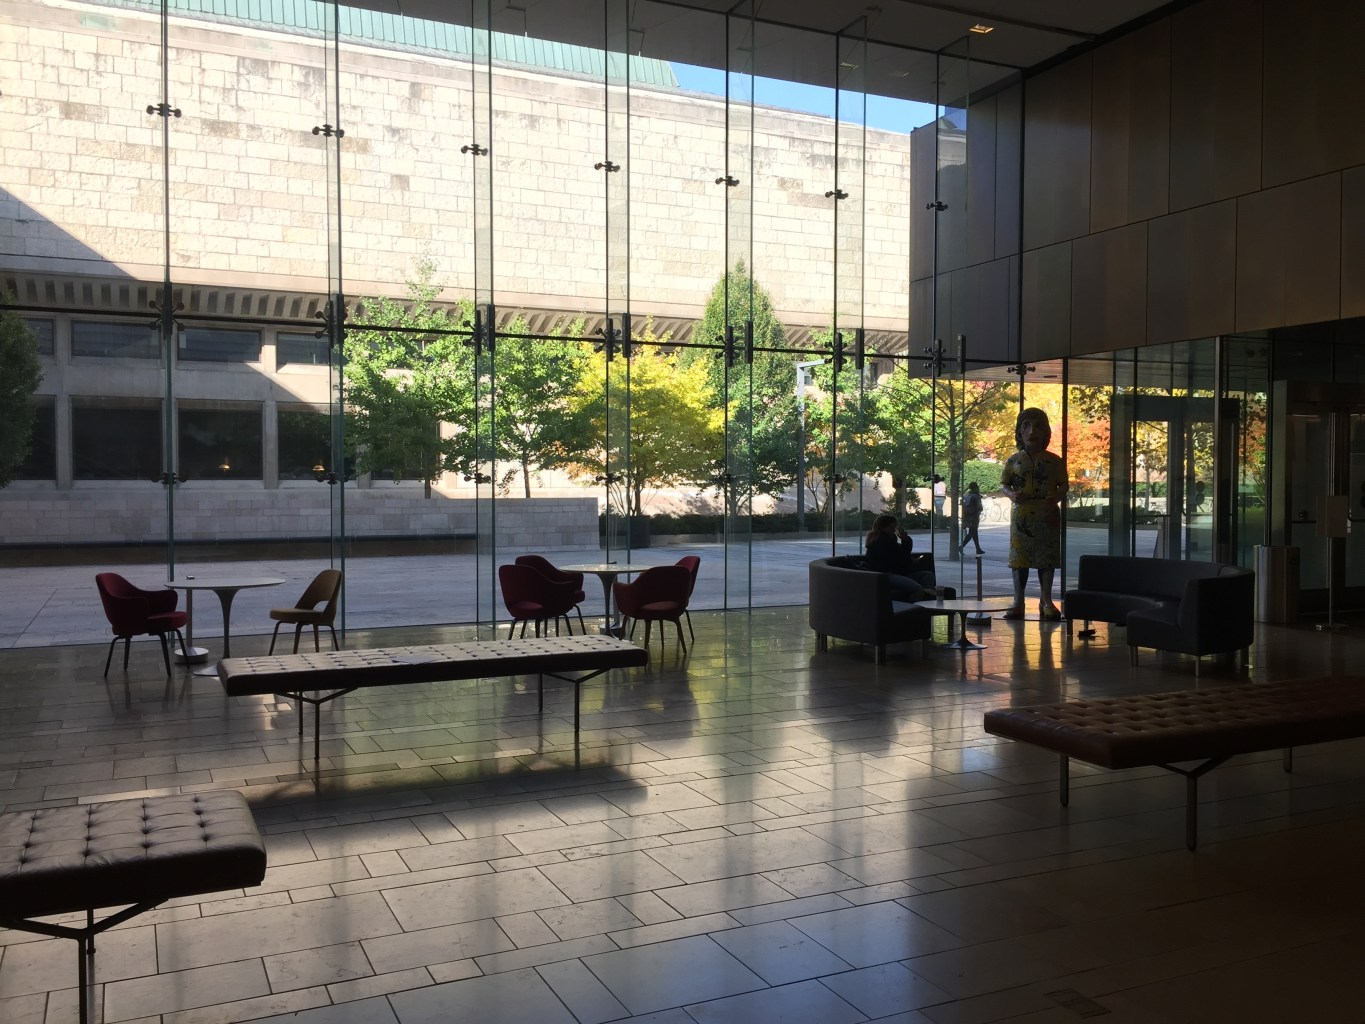 A lobby space with floor-to-ceiling glass walls and cafe-style tables and benches.